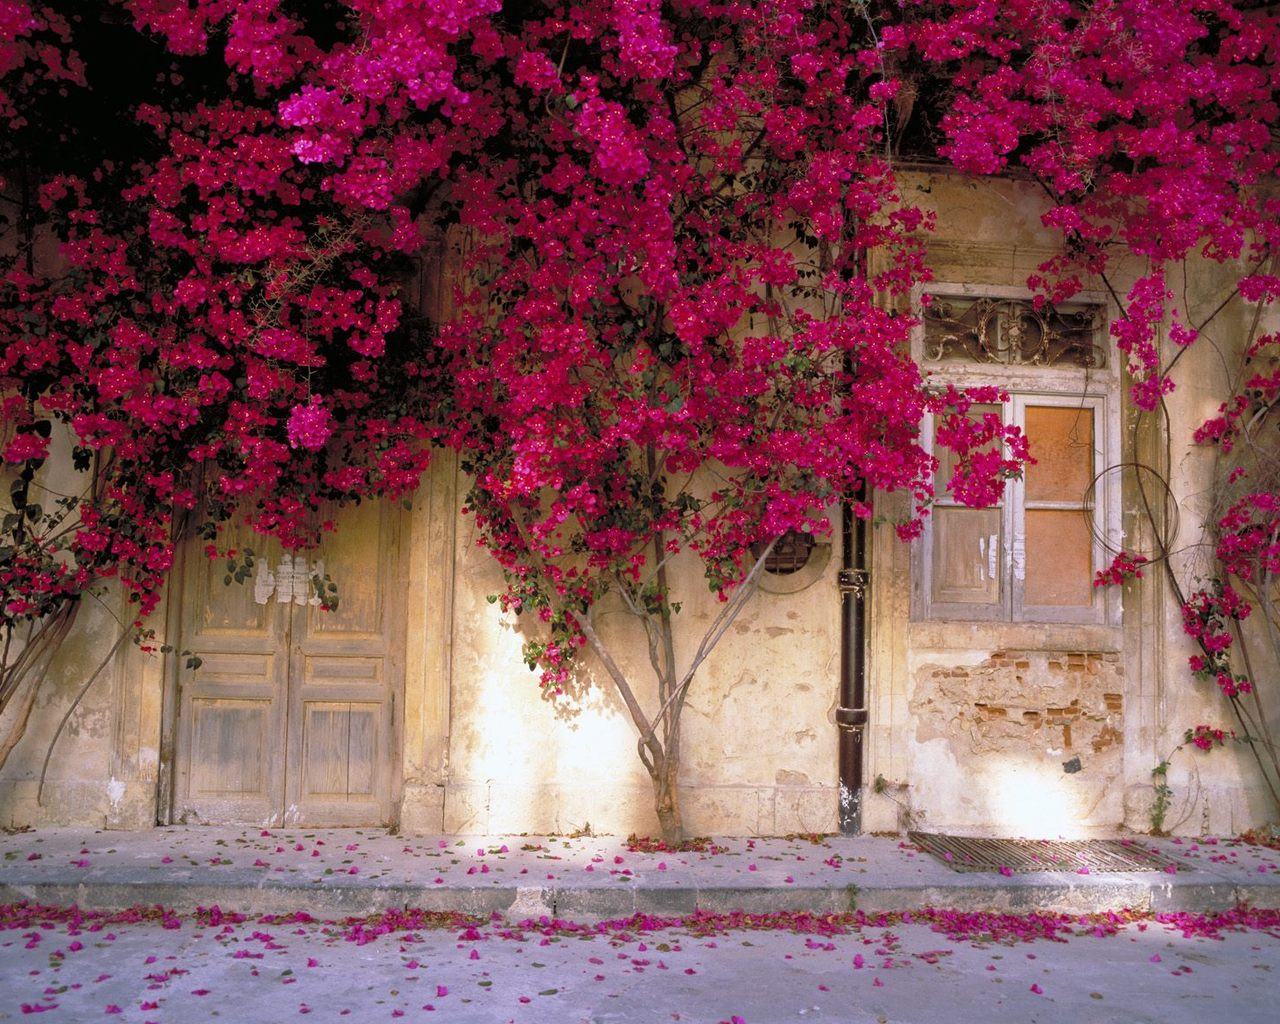 Stunning bougainvillea flowering in the spring